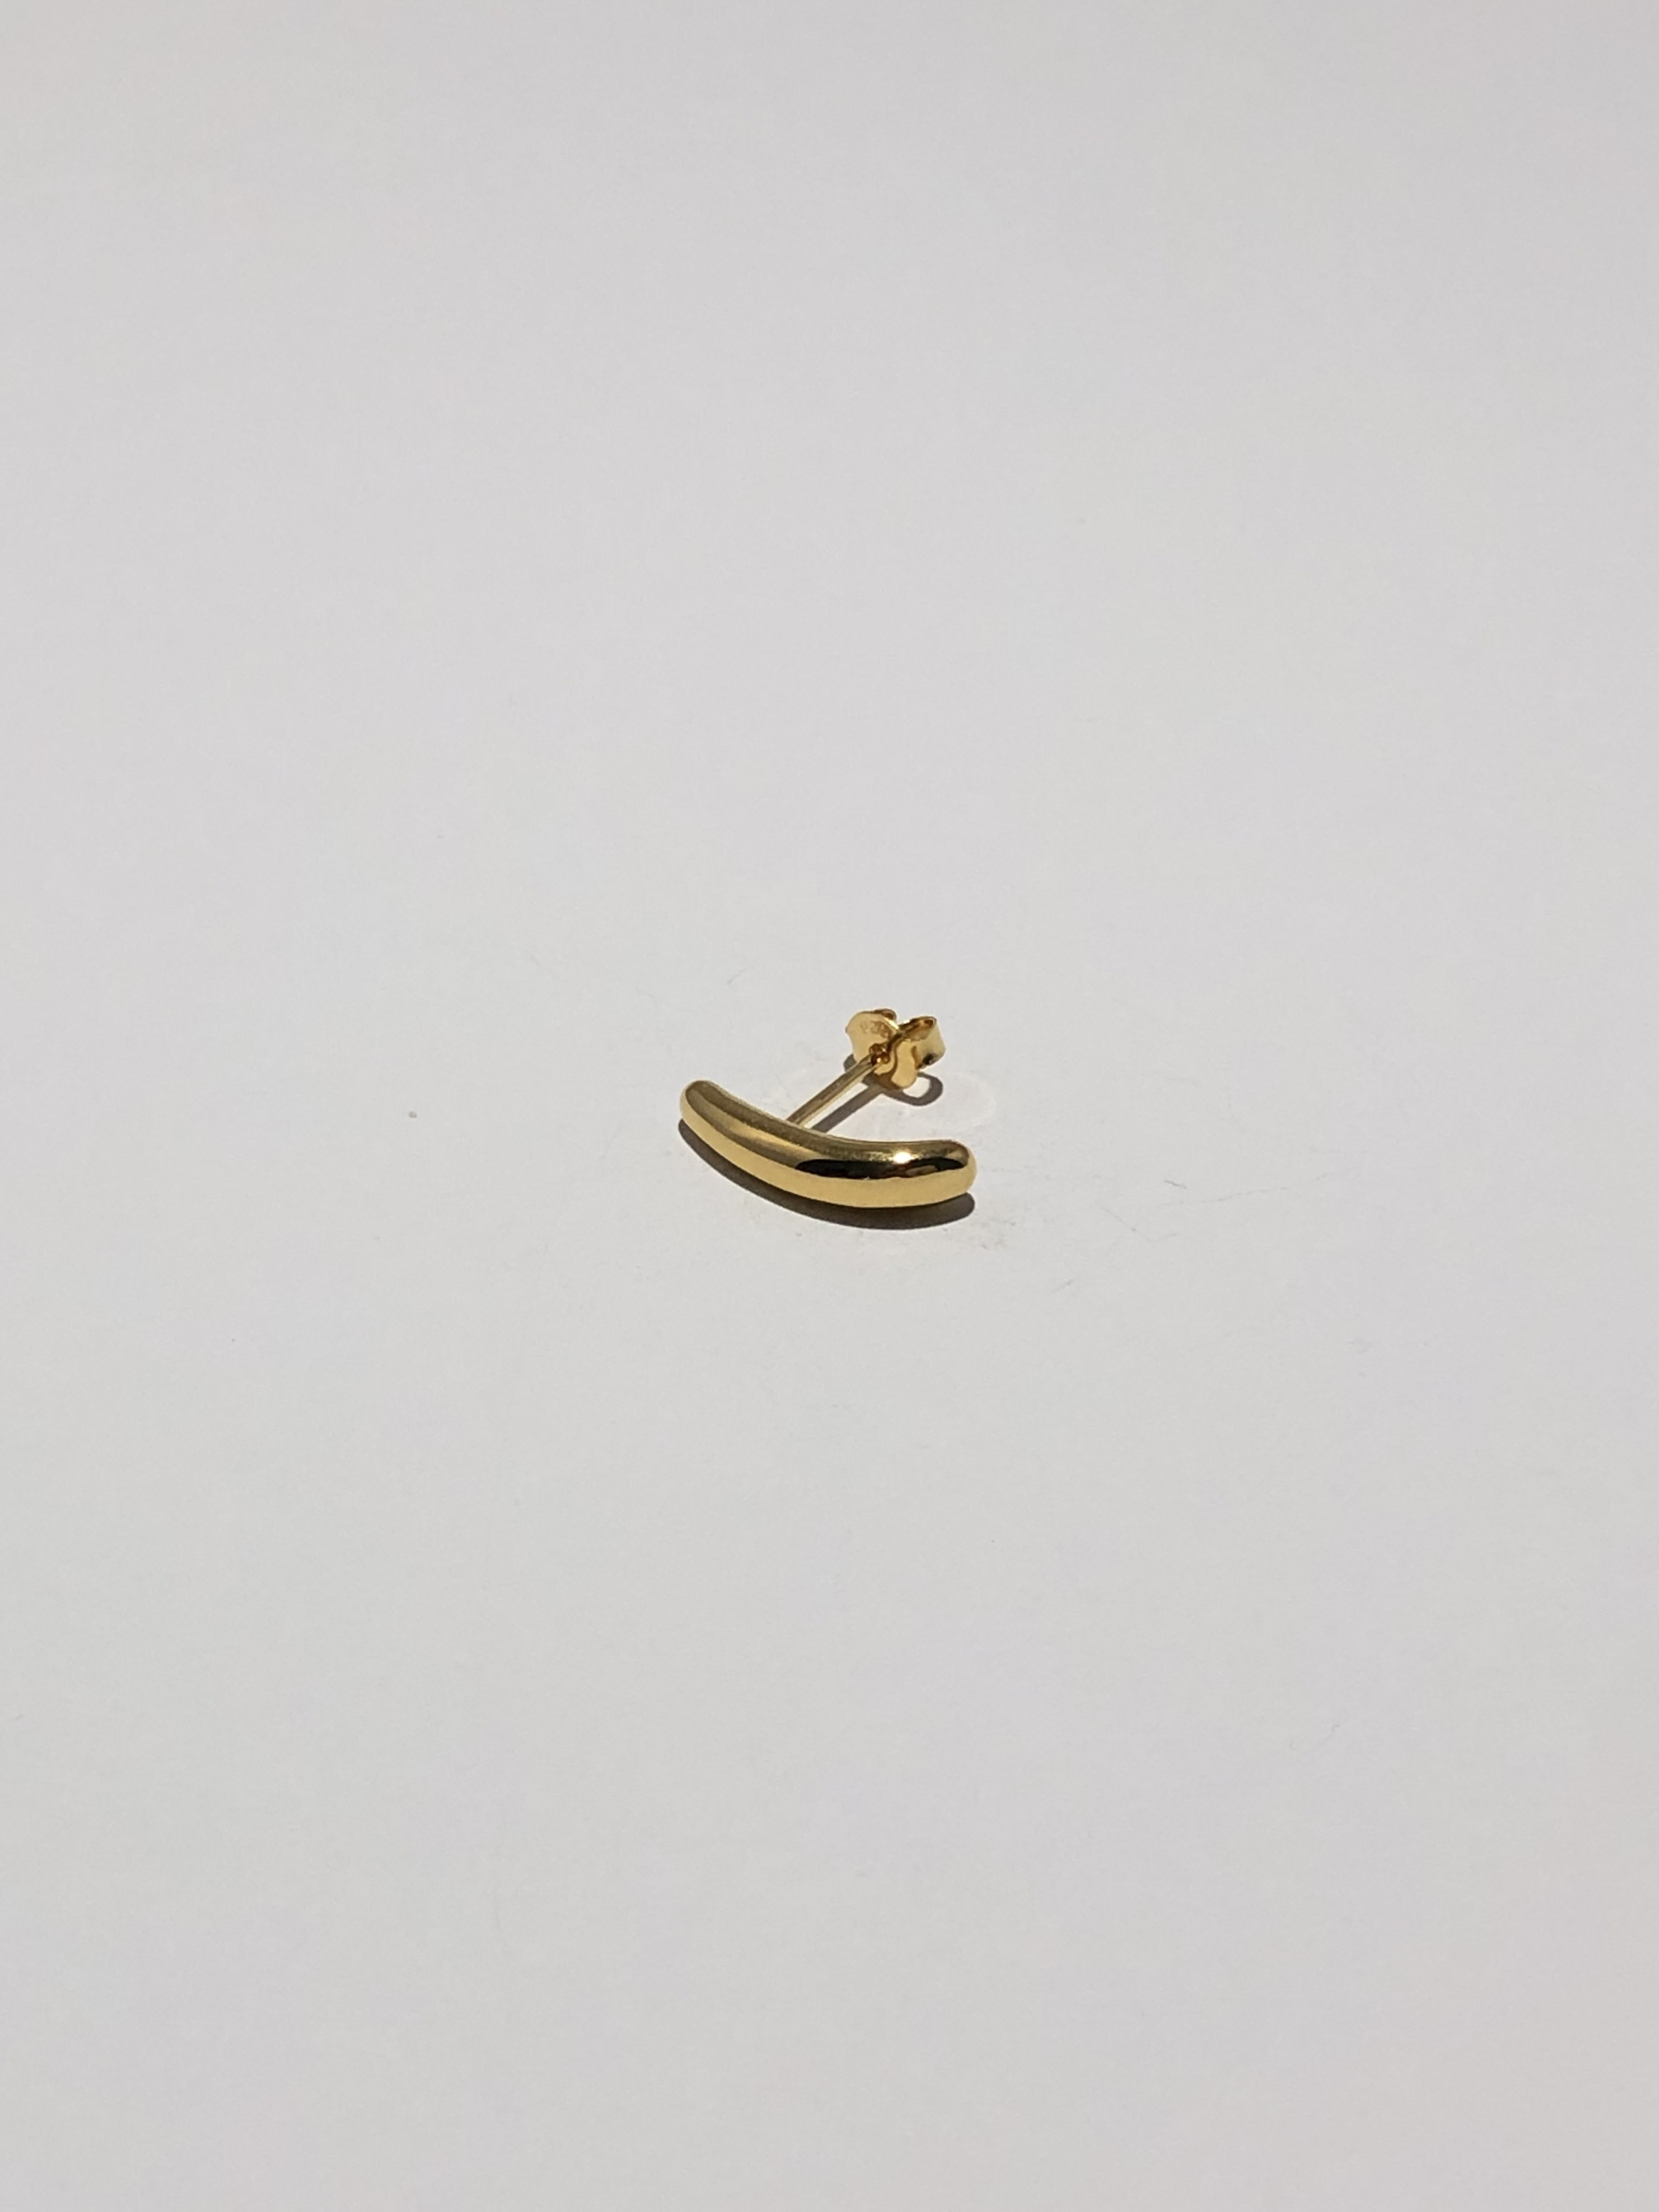 j nudie pierce gold(再入荷)